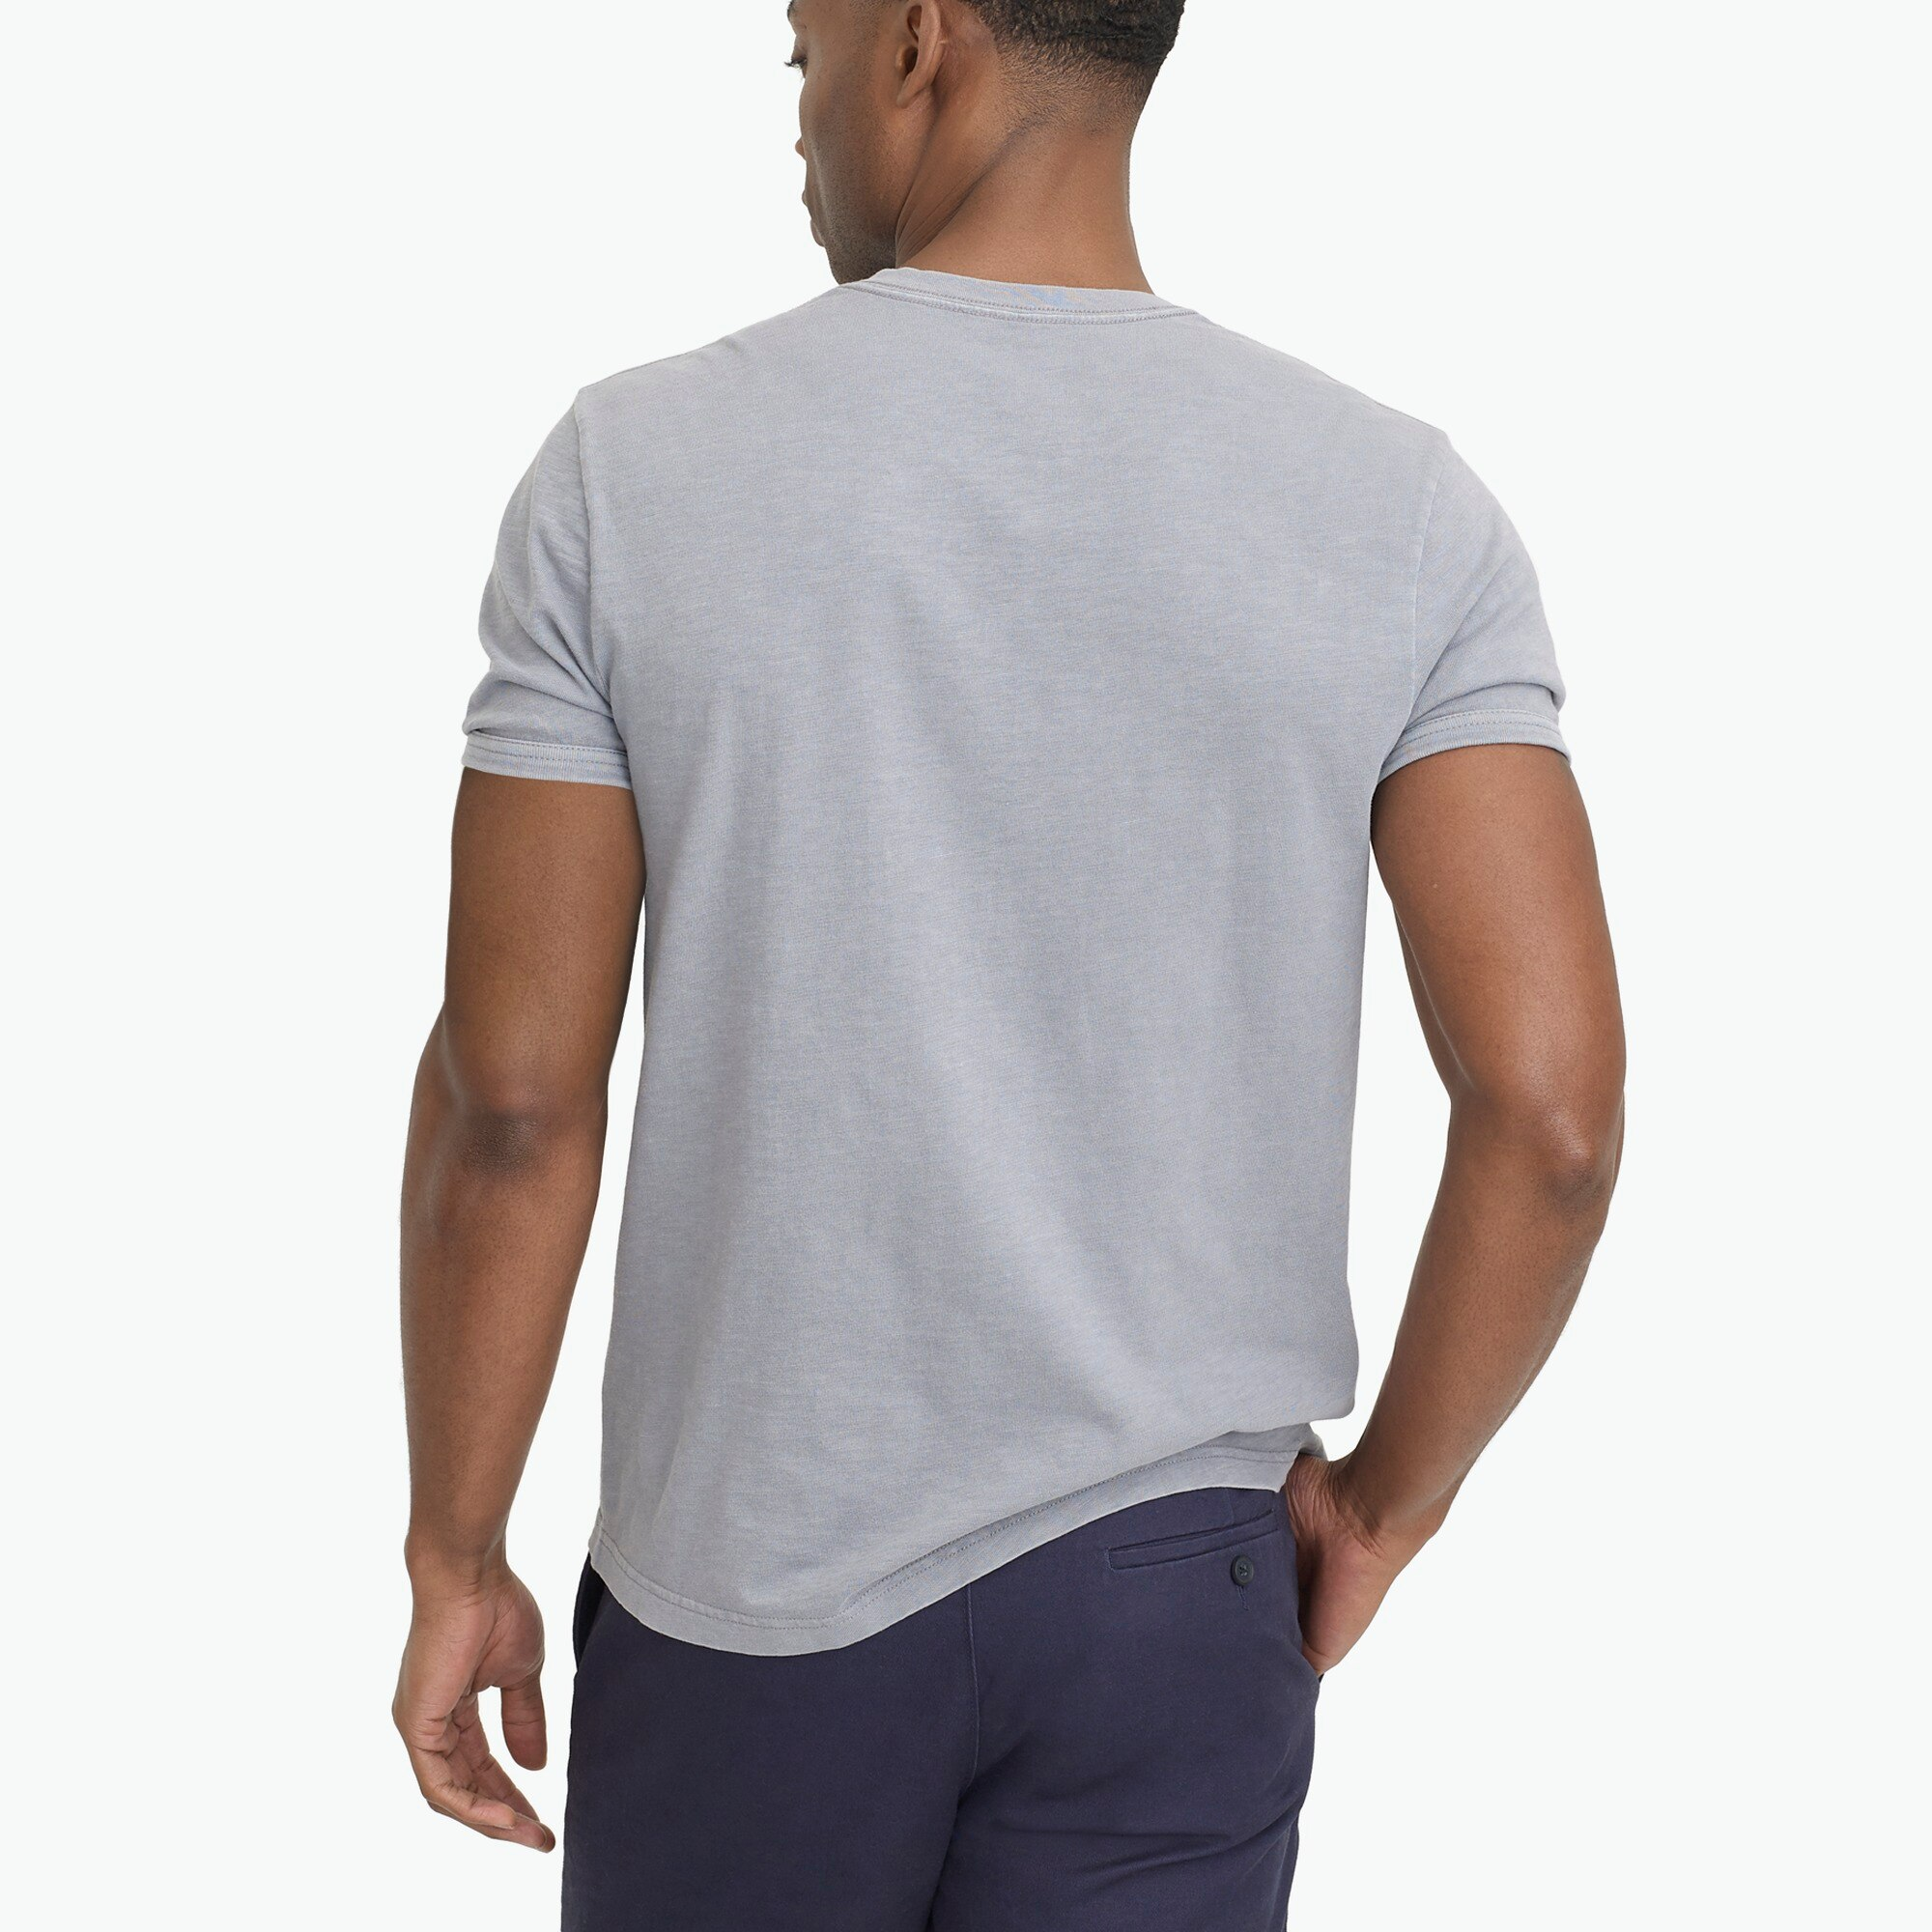 Image 3 for Short-sleeve slub cotton henley